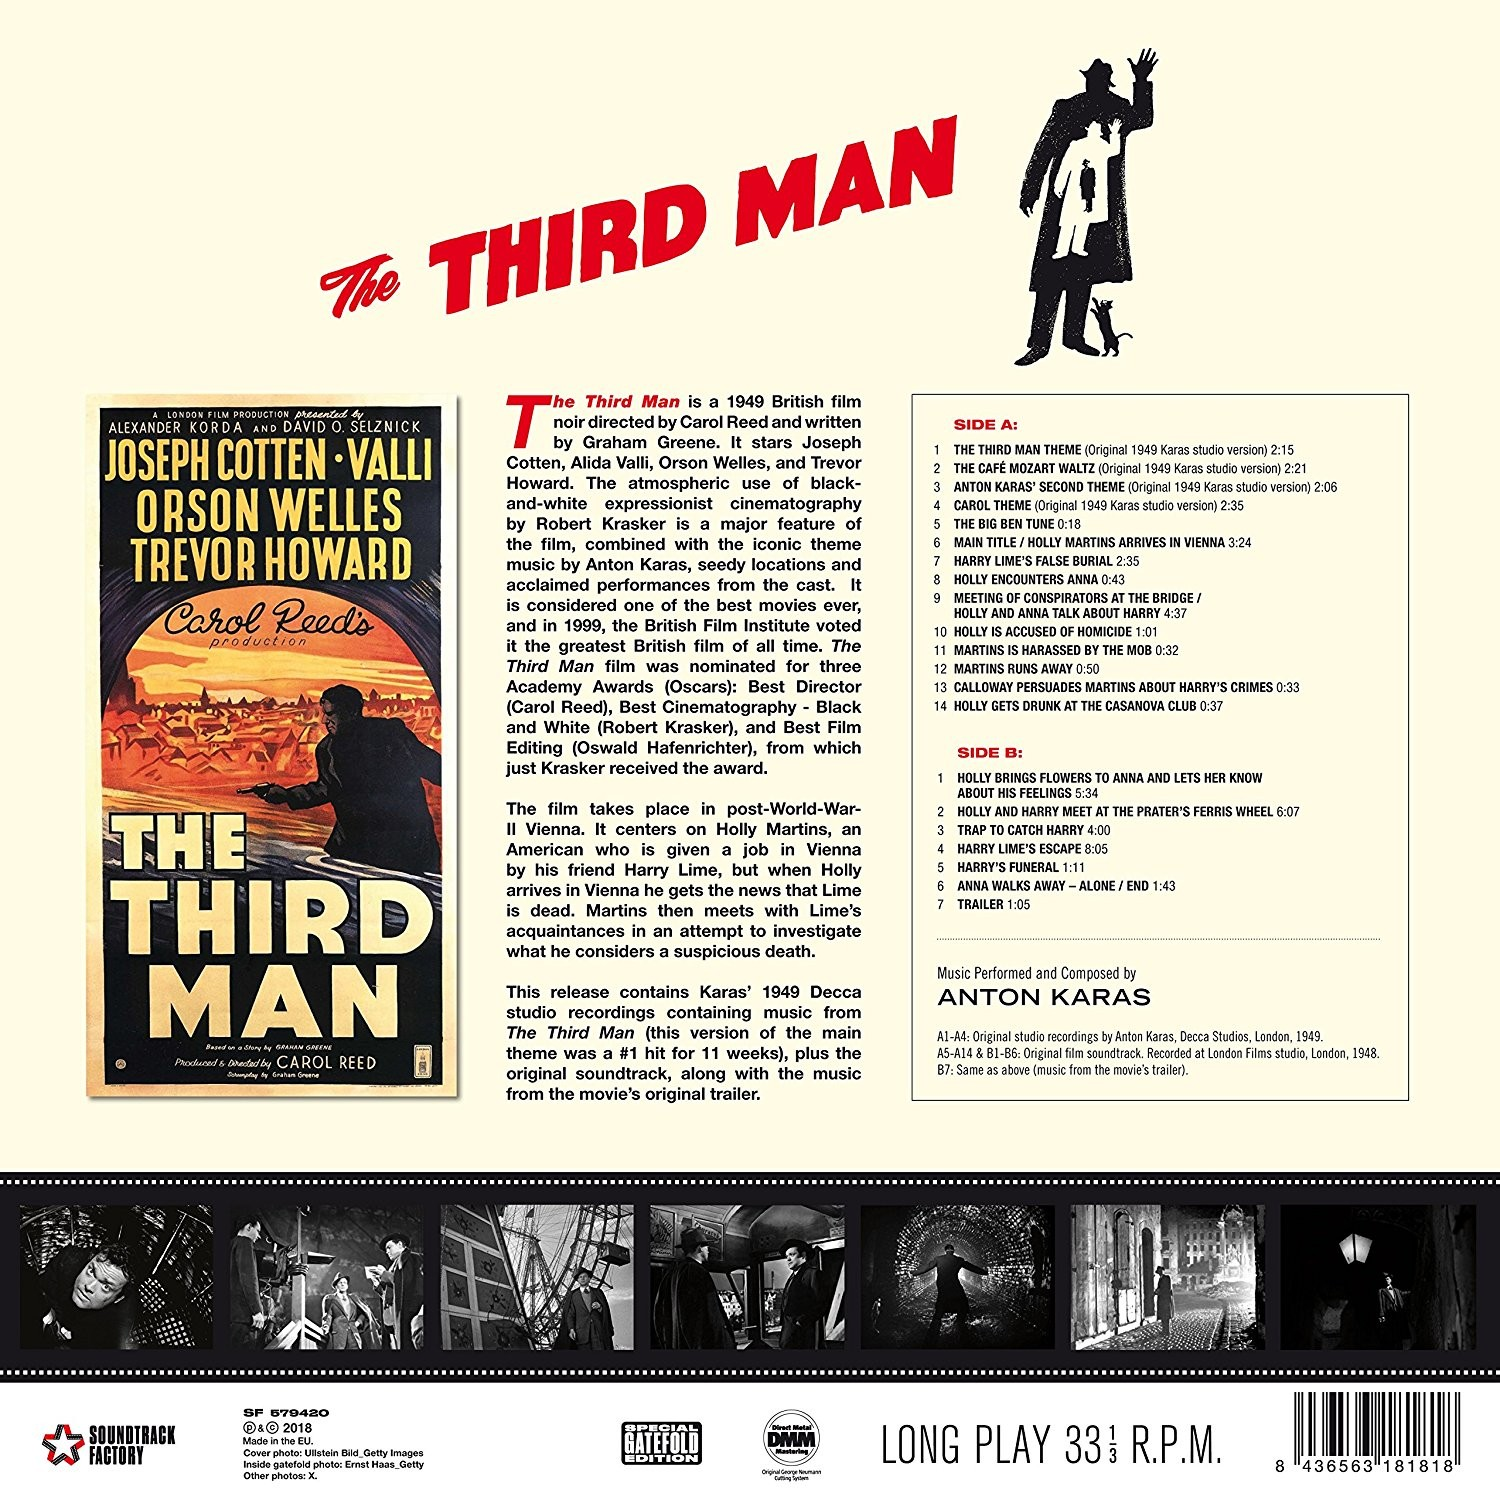 a movie analysis of the movie the third man directed by carol reed Get this from a library from fiction to film : a critical analysis of graham greene's the fallen idol, the third man, and our man in havana, directed by carol reed.